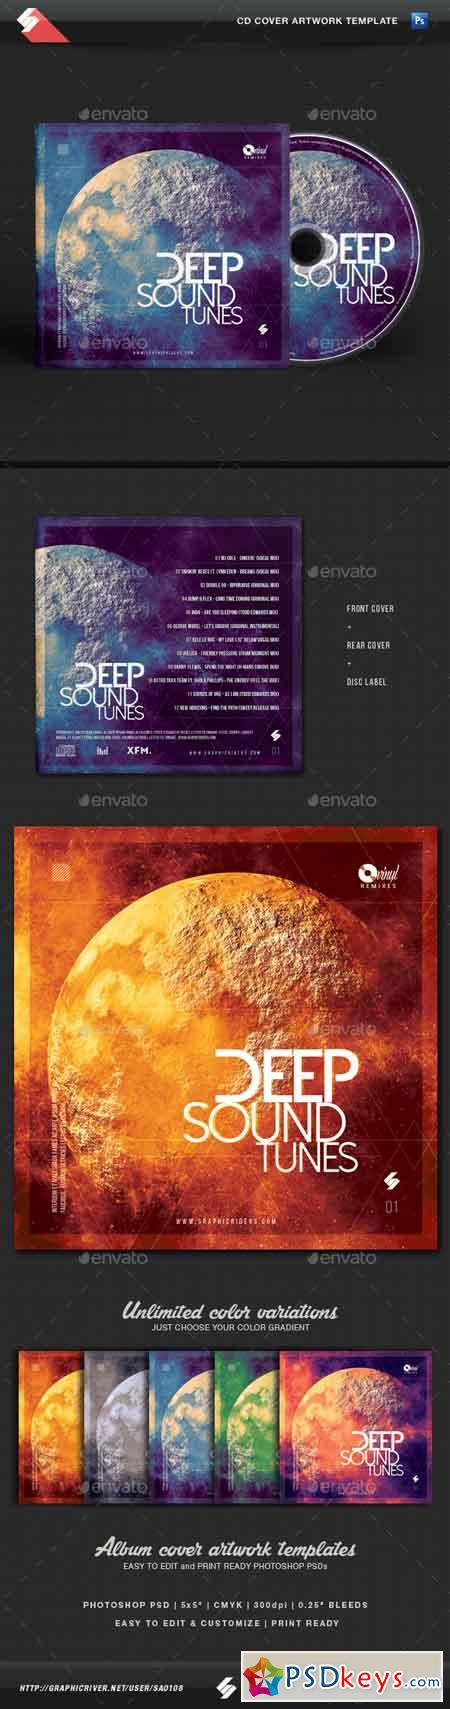 Deep Sound Tunes - CD Cover Template 14490121